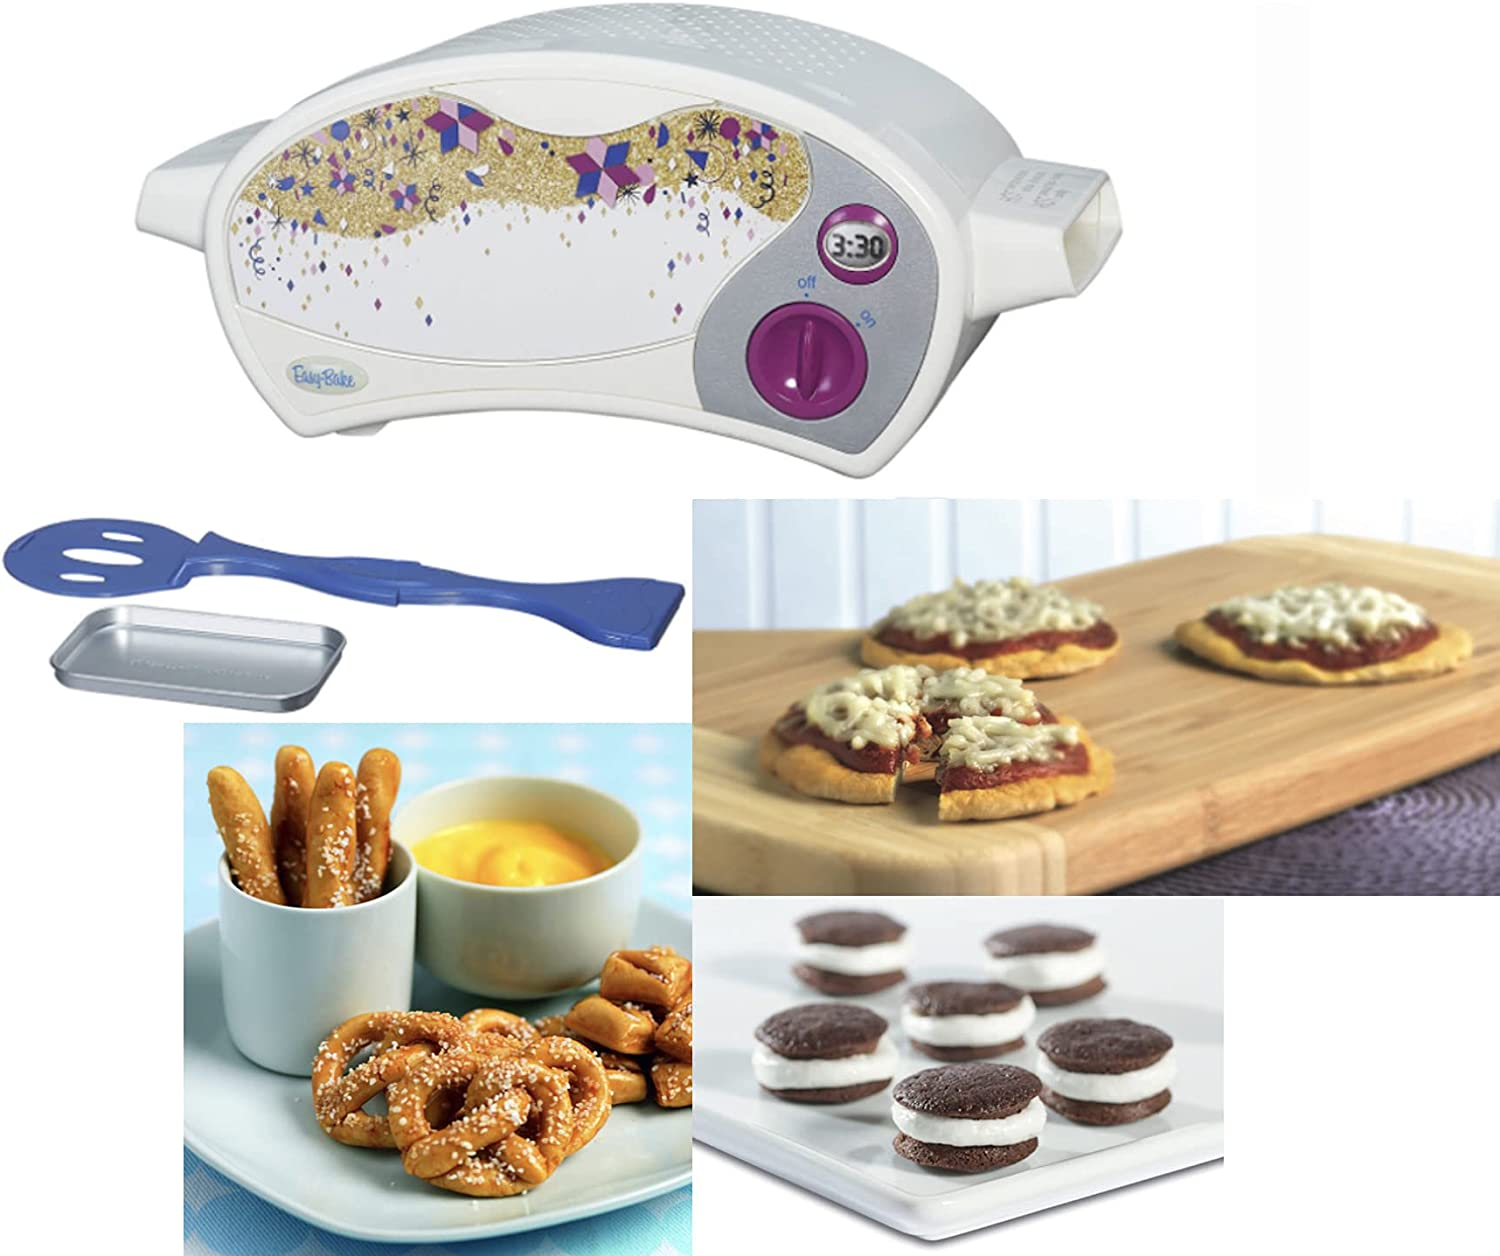 Habanerofire Spring new work one after another Easy favorite Bake Oven Bundle: Ult Star Baking White Series